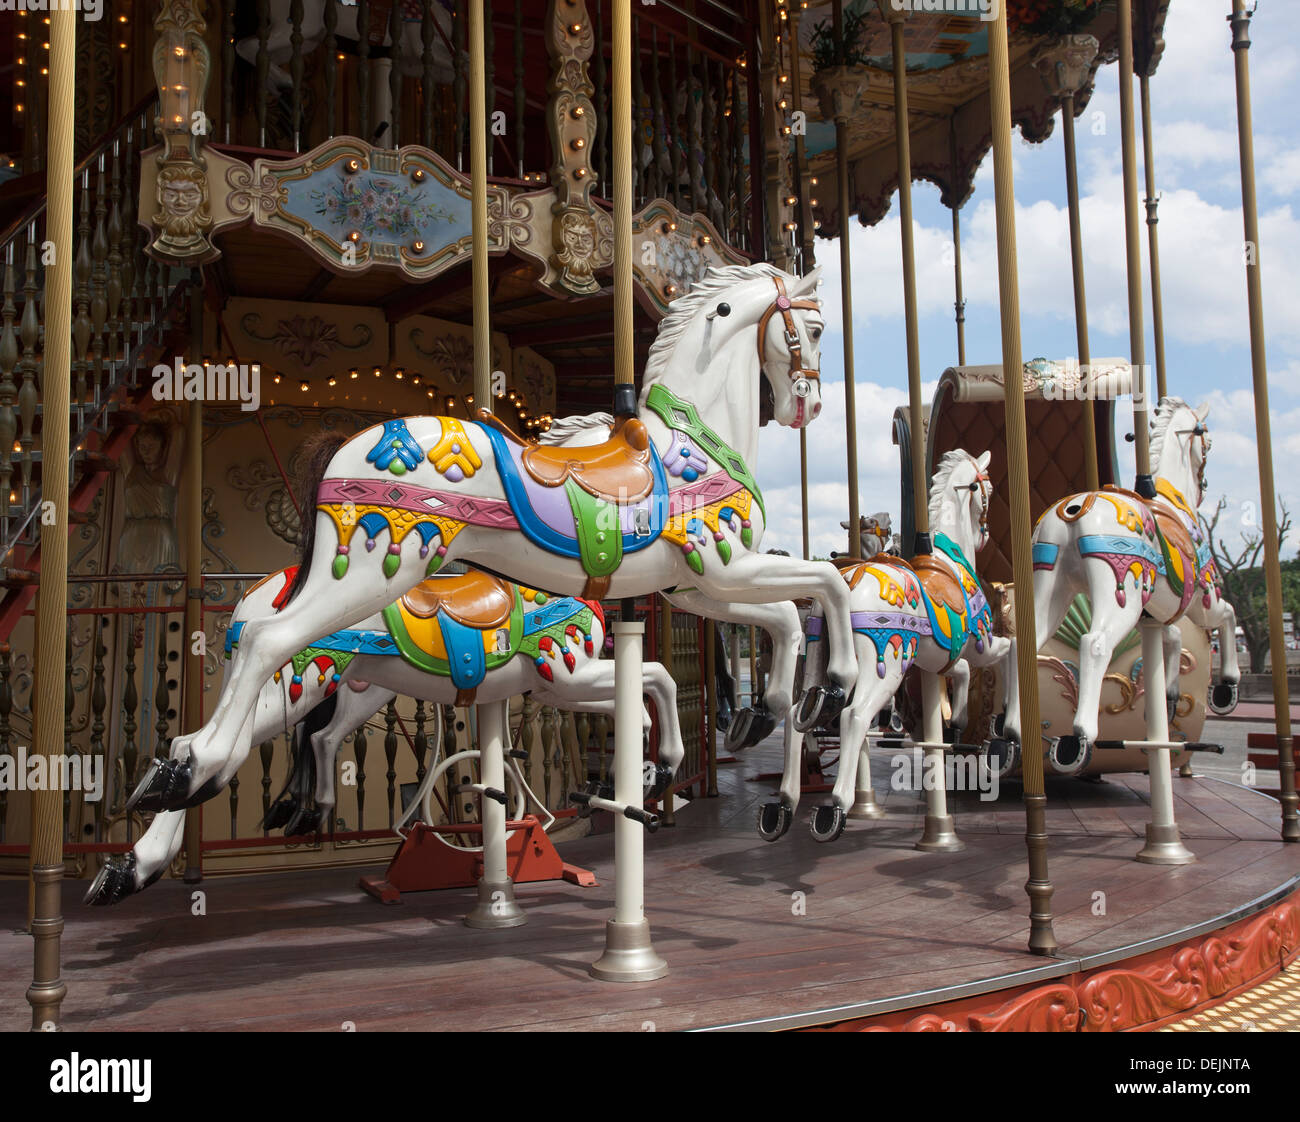 Close up of Horses on an Old Fashioned French style Carousel in Paris France, also called a Merry-go-Round. - Stock Image